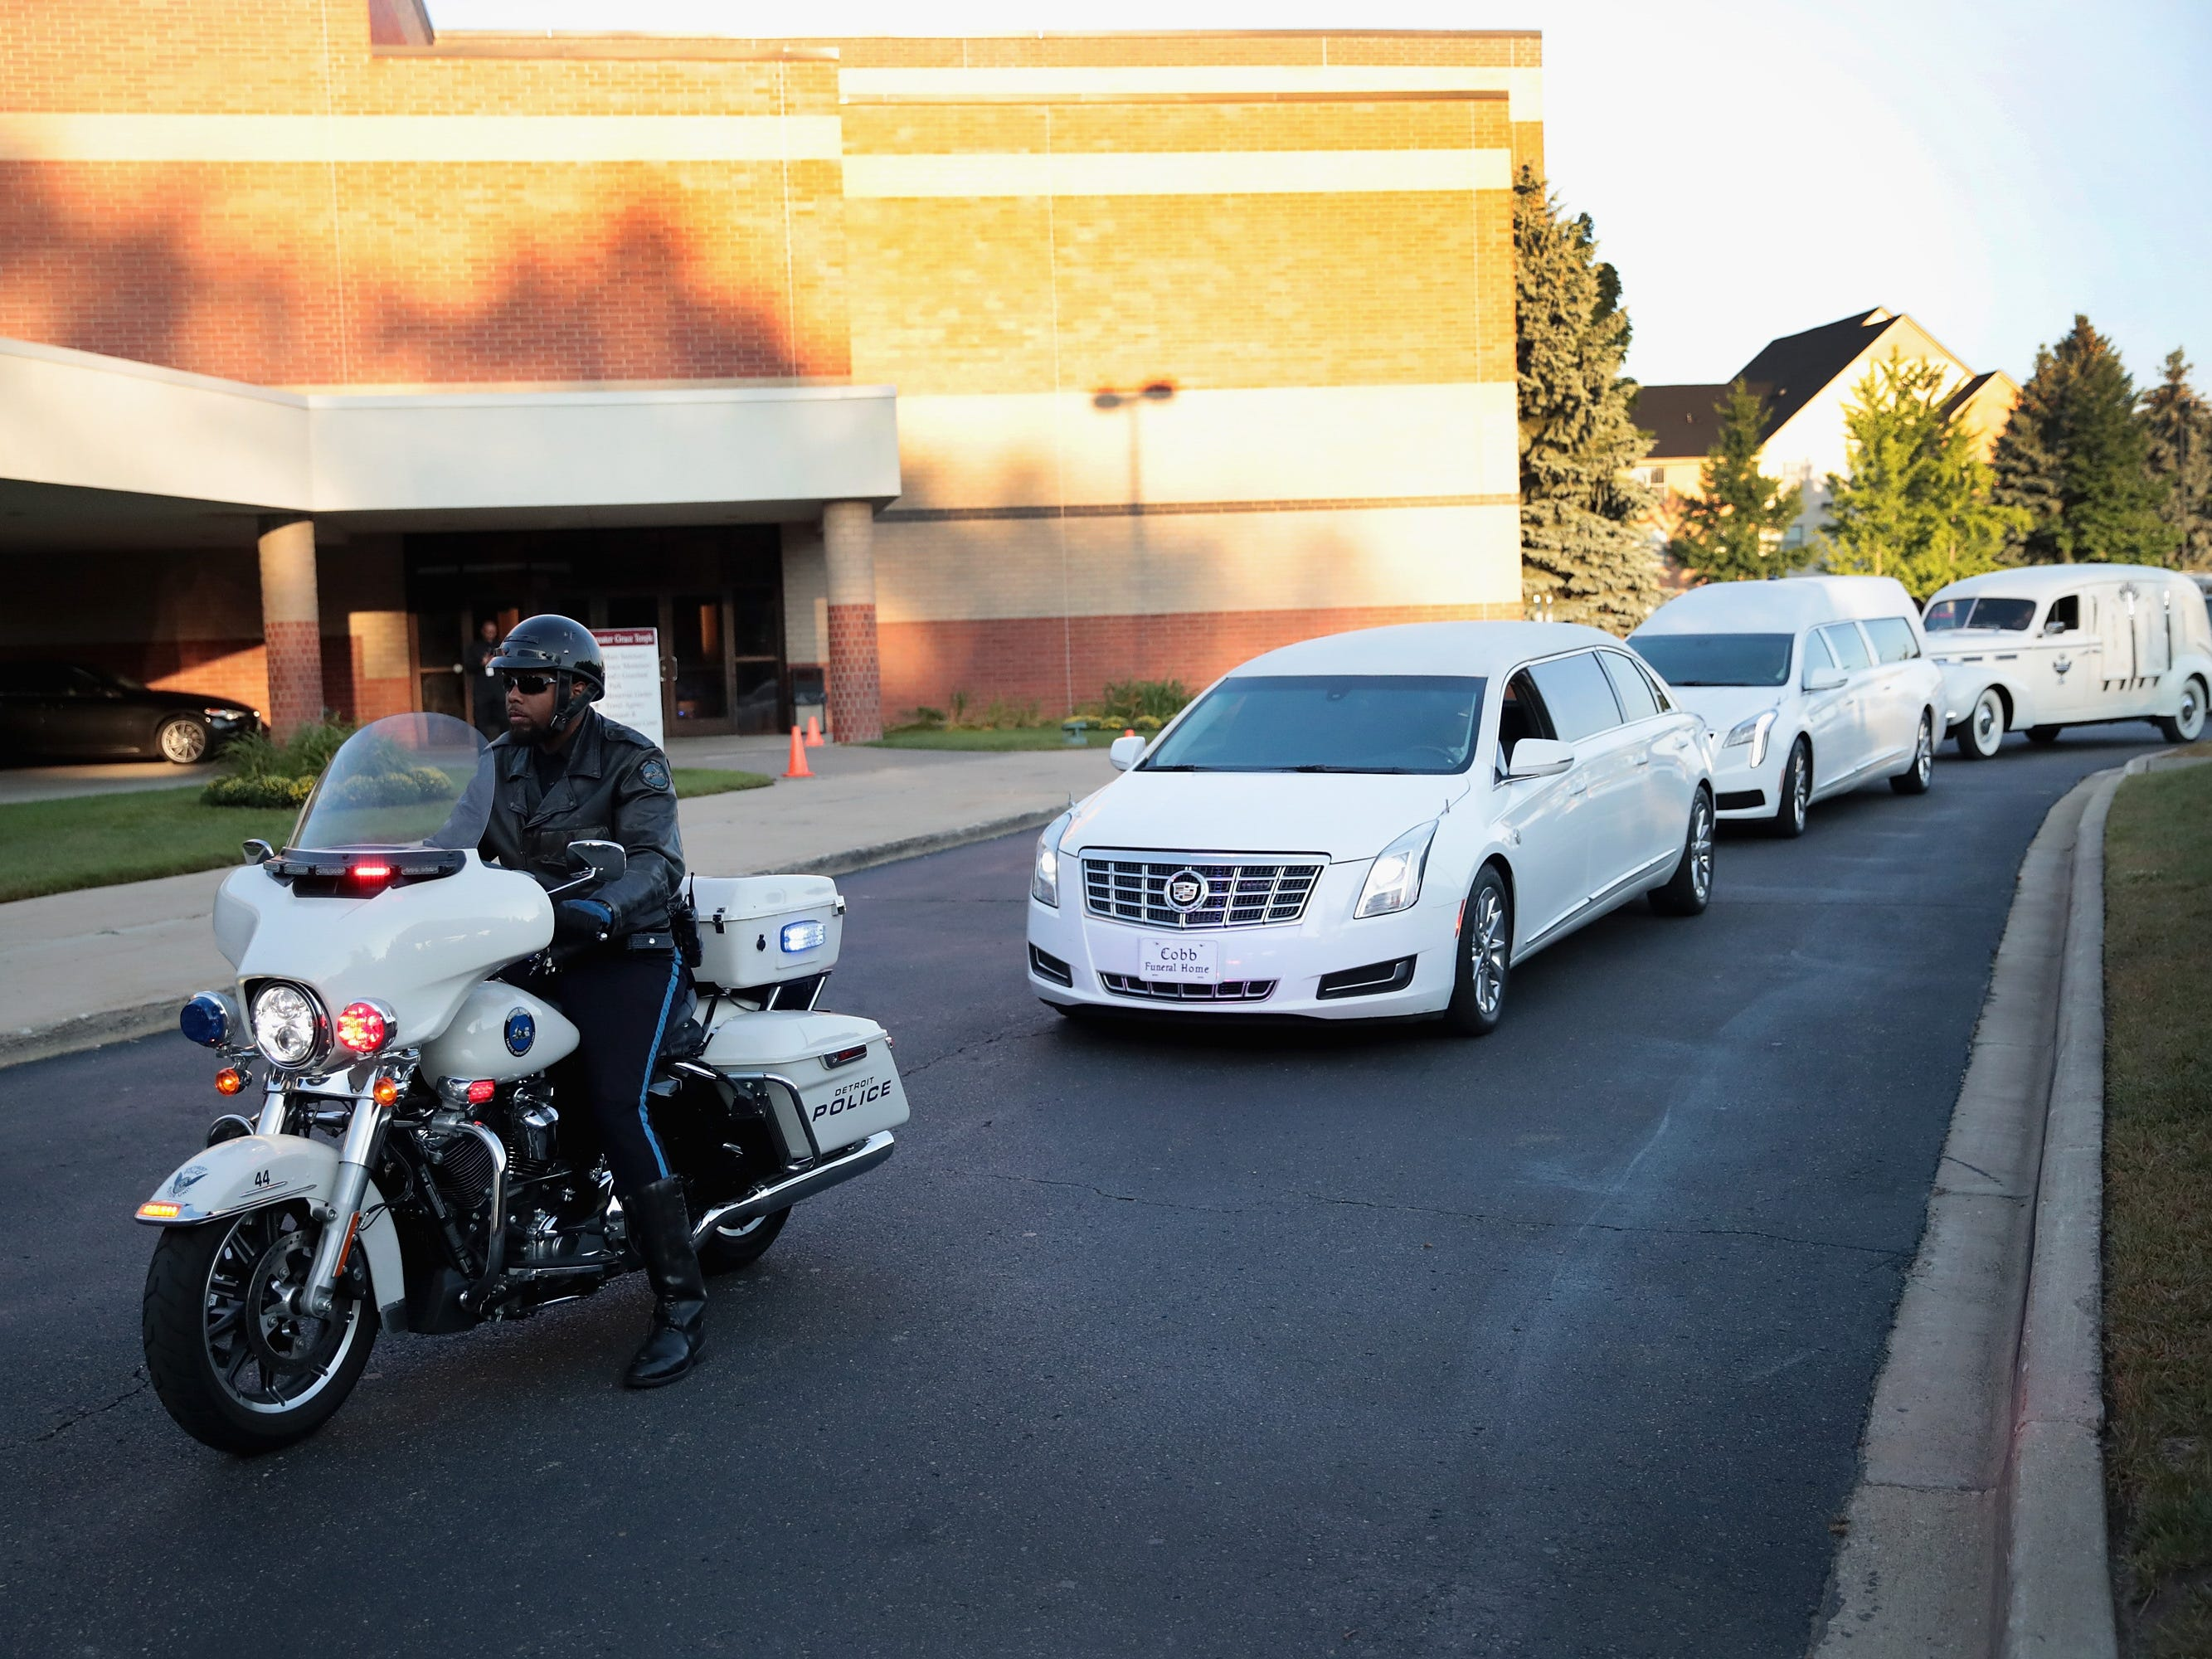 The remains of Aretha Franklin get a police escort to her funeral service at Greater Grace Temple.